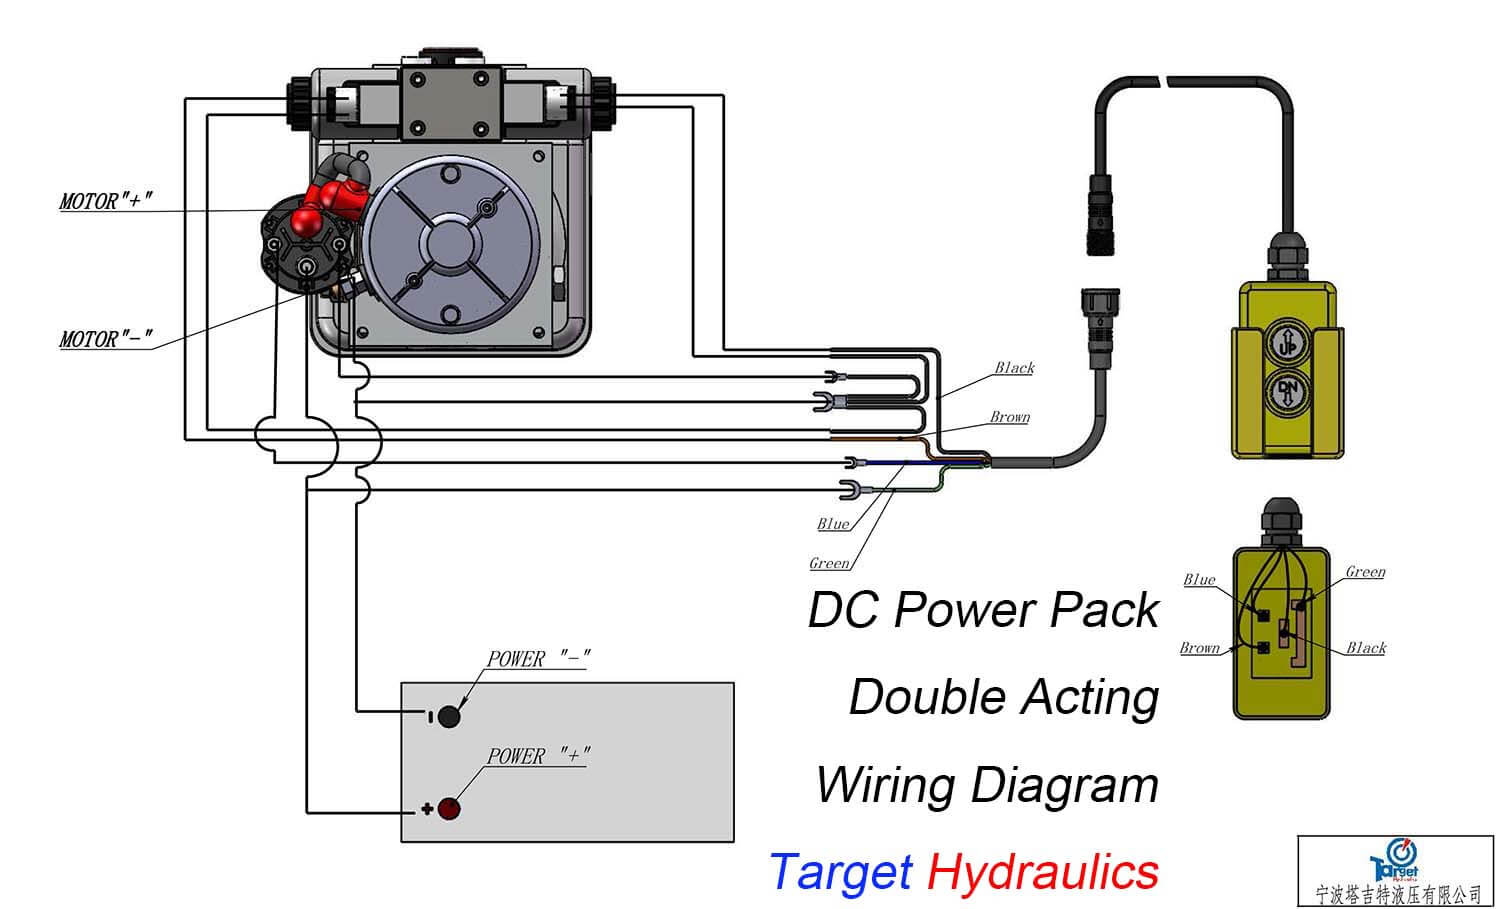 How to Wire_DC Motor Double Acting Power Pack how to wire hydraulic power pack,power unit diagram design 110 Power Cord Diagram at mr168.co